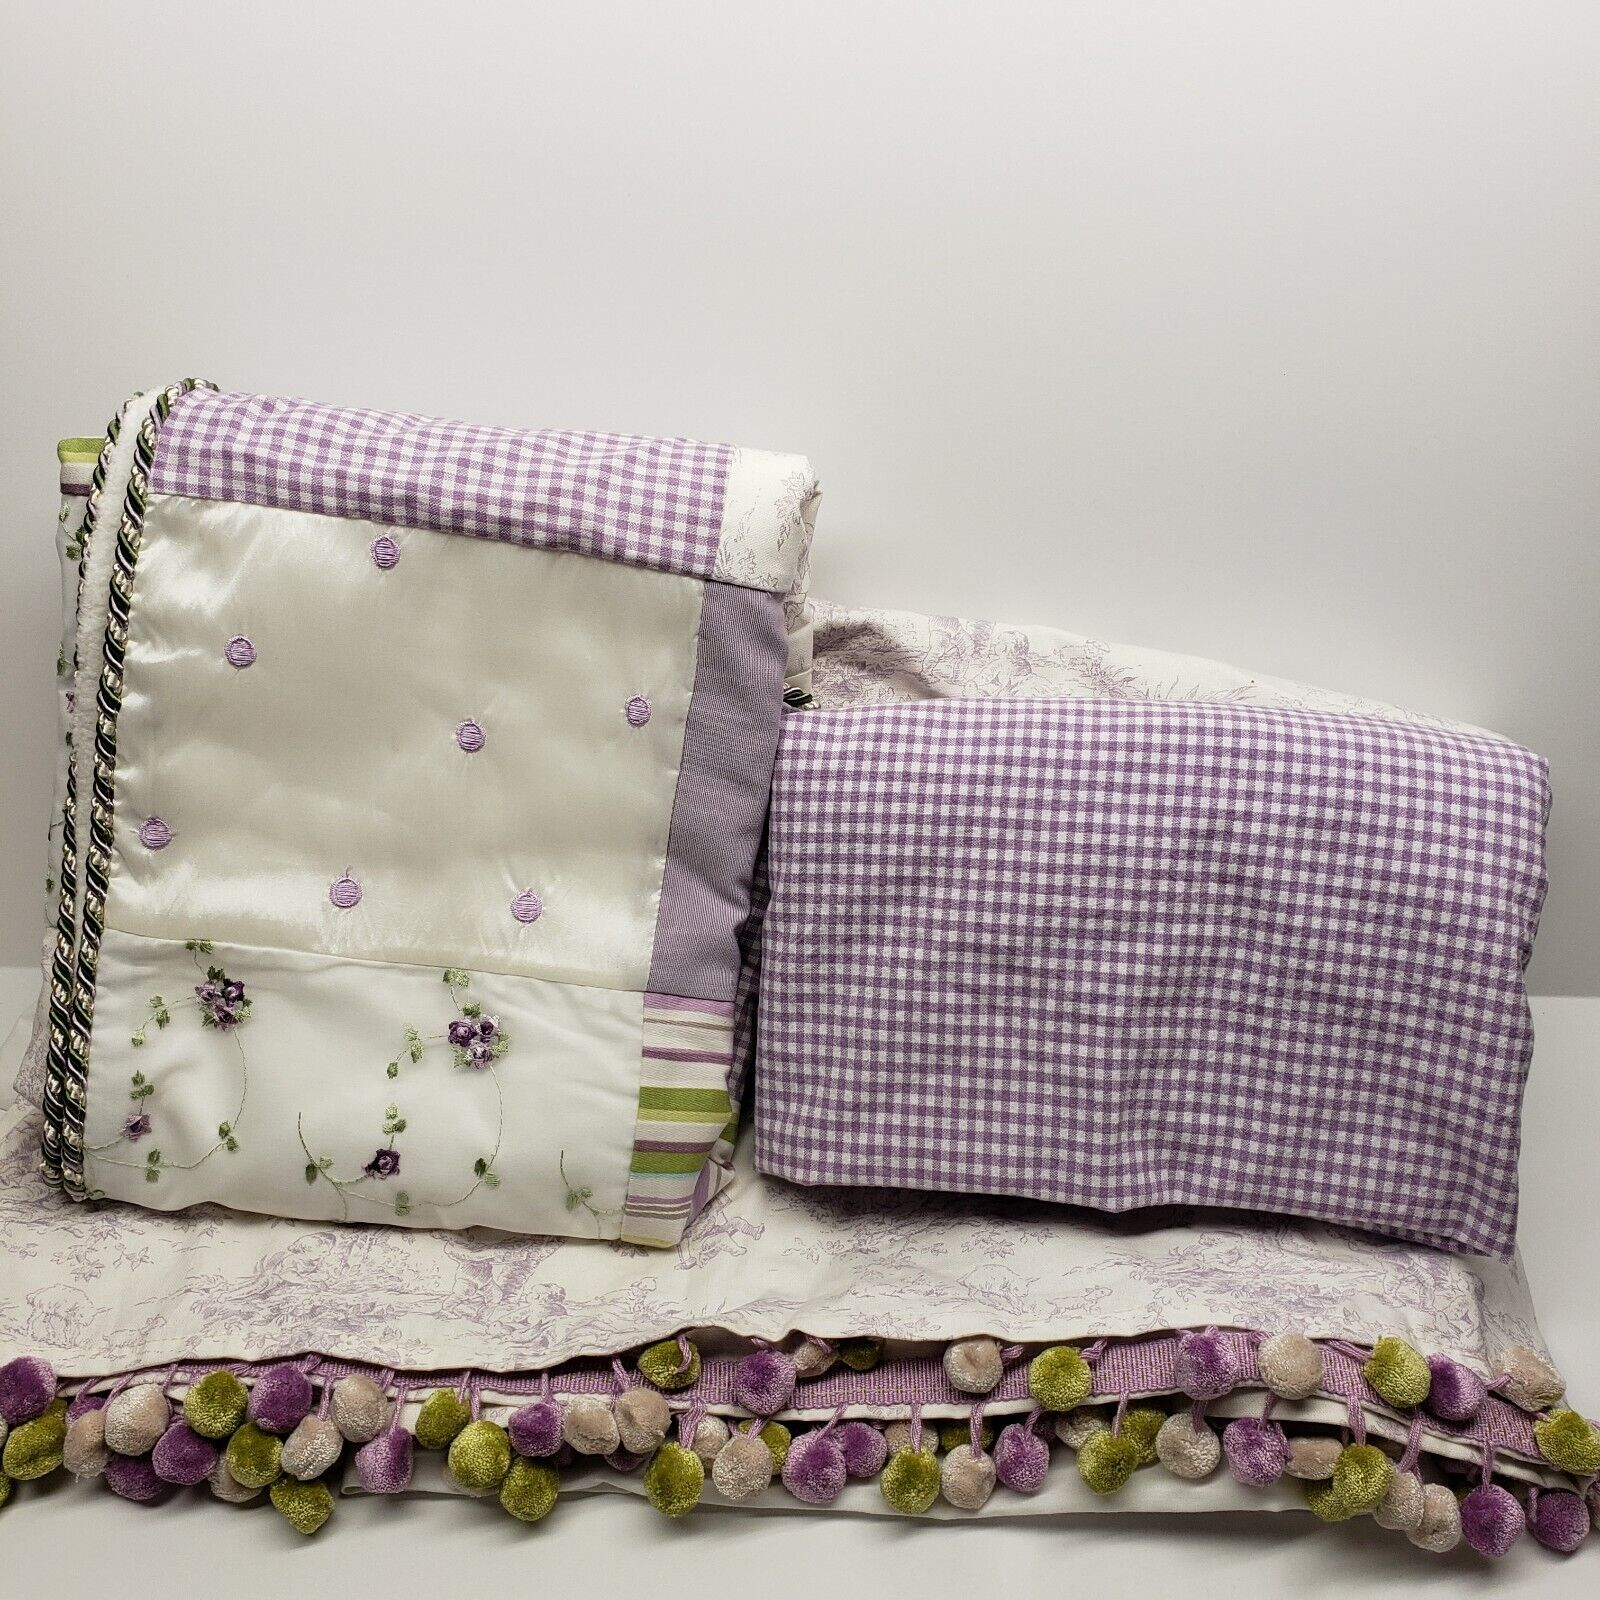 Lavender//White Glenna Jean Penelope Gingham Fitted Sheet